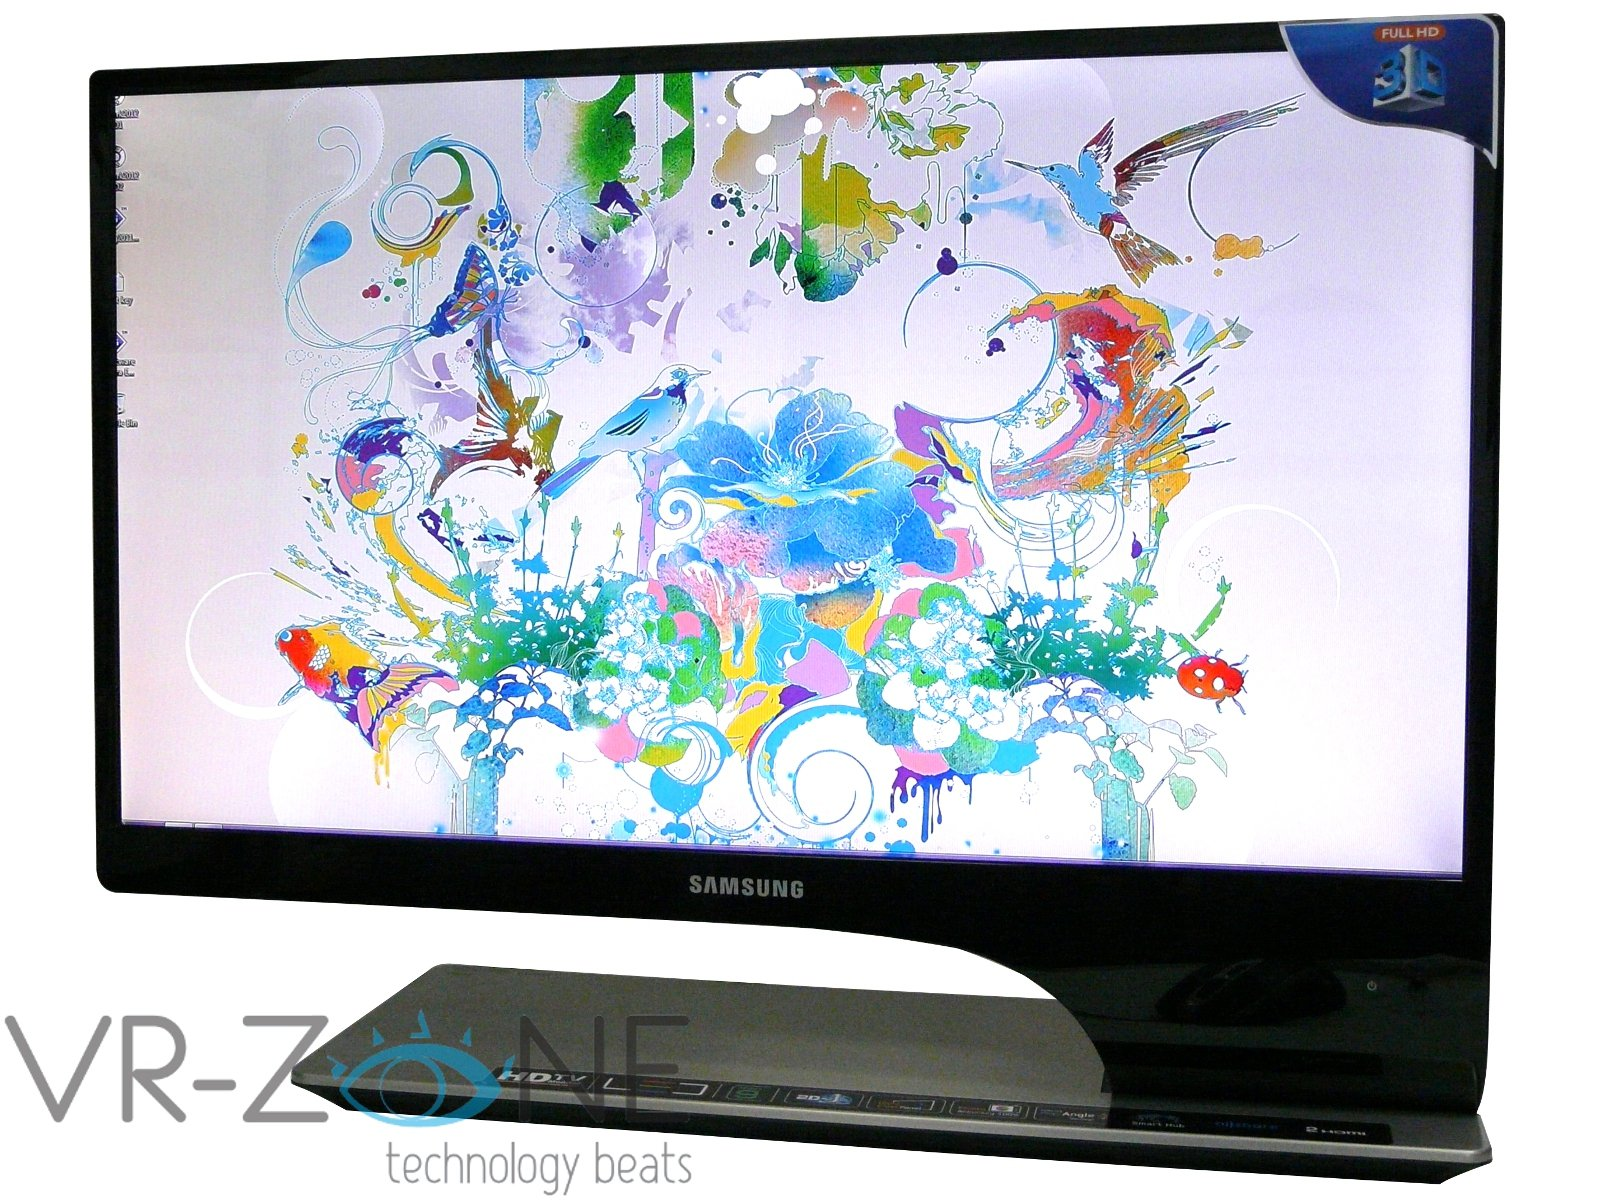 Samsung Series 9 TA950 3D LED HDTV monitor review As good as it looks 1600x1200